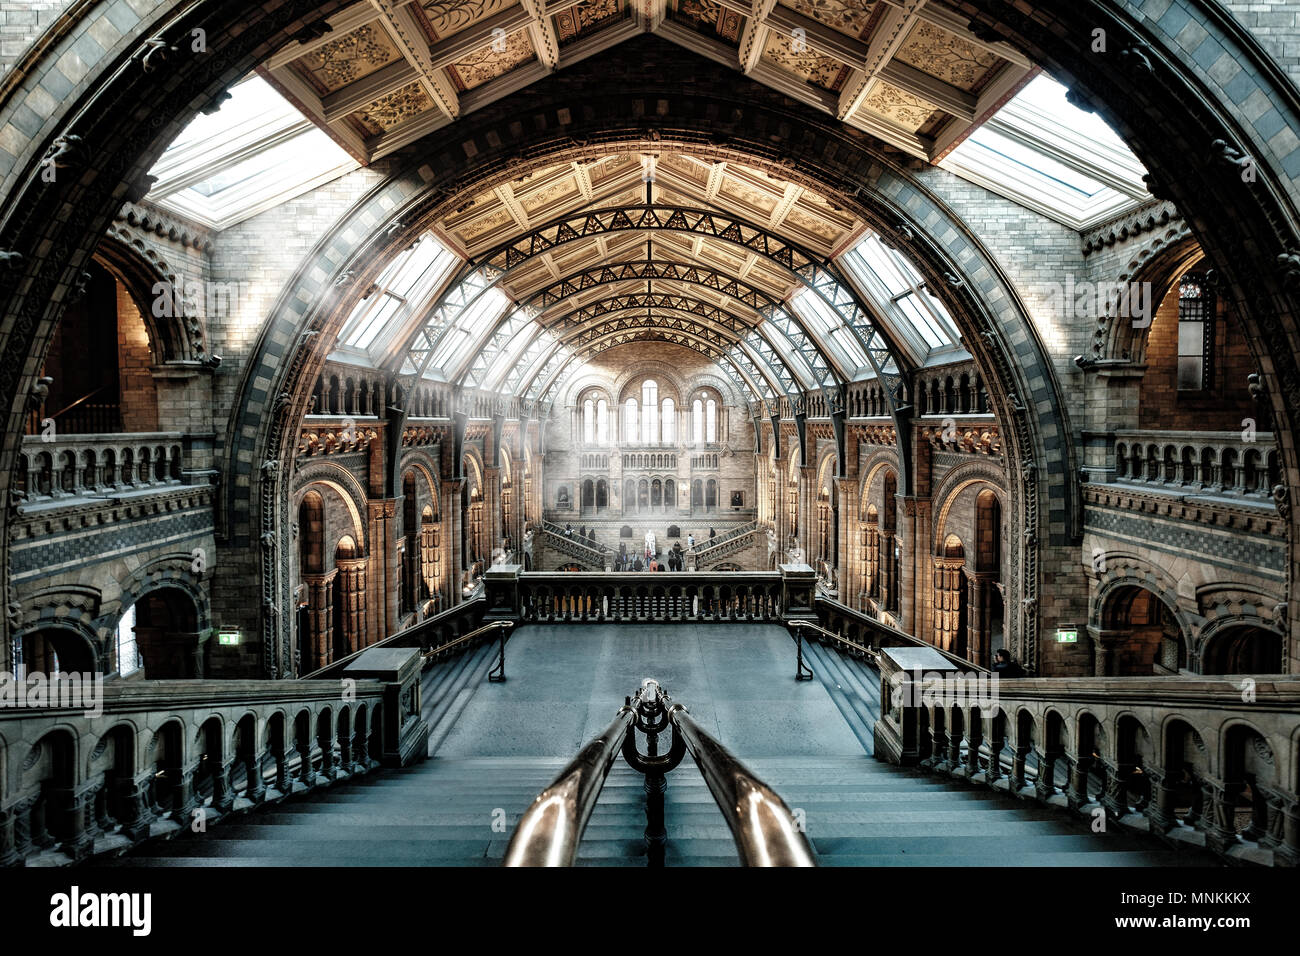 The central hall of the Natural Histoy Museum in London employing some new lighting processing techniques as explained at https://www.youtube.com/watc - Stock Image